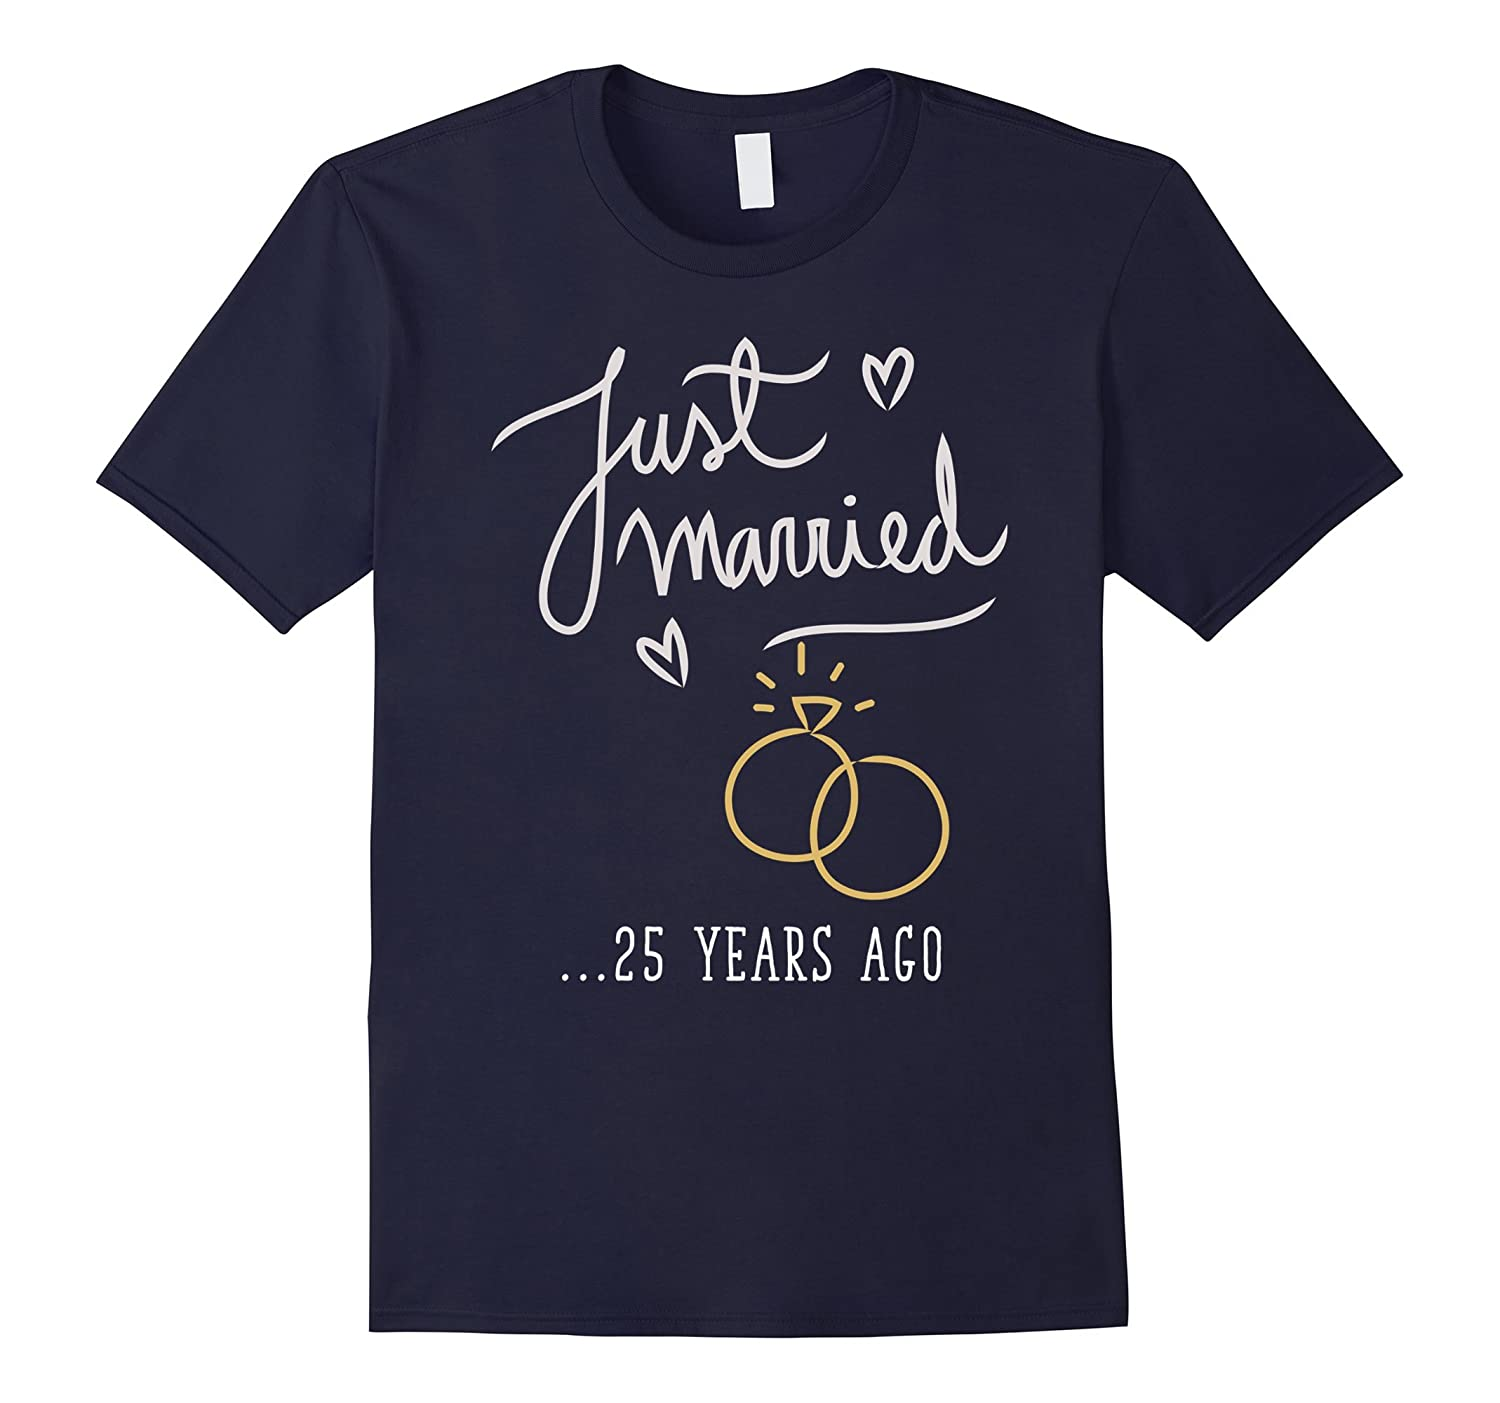 Just Married 25 Years Ago Marriage T Shirt-TH